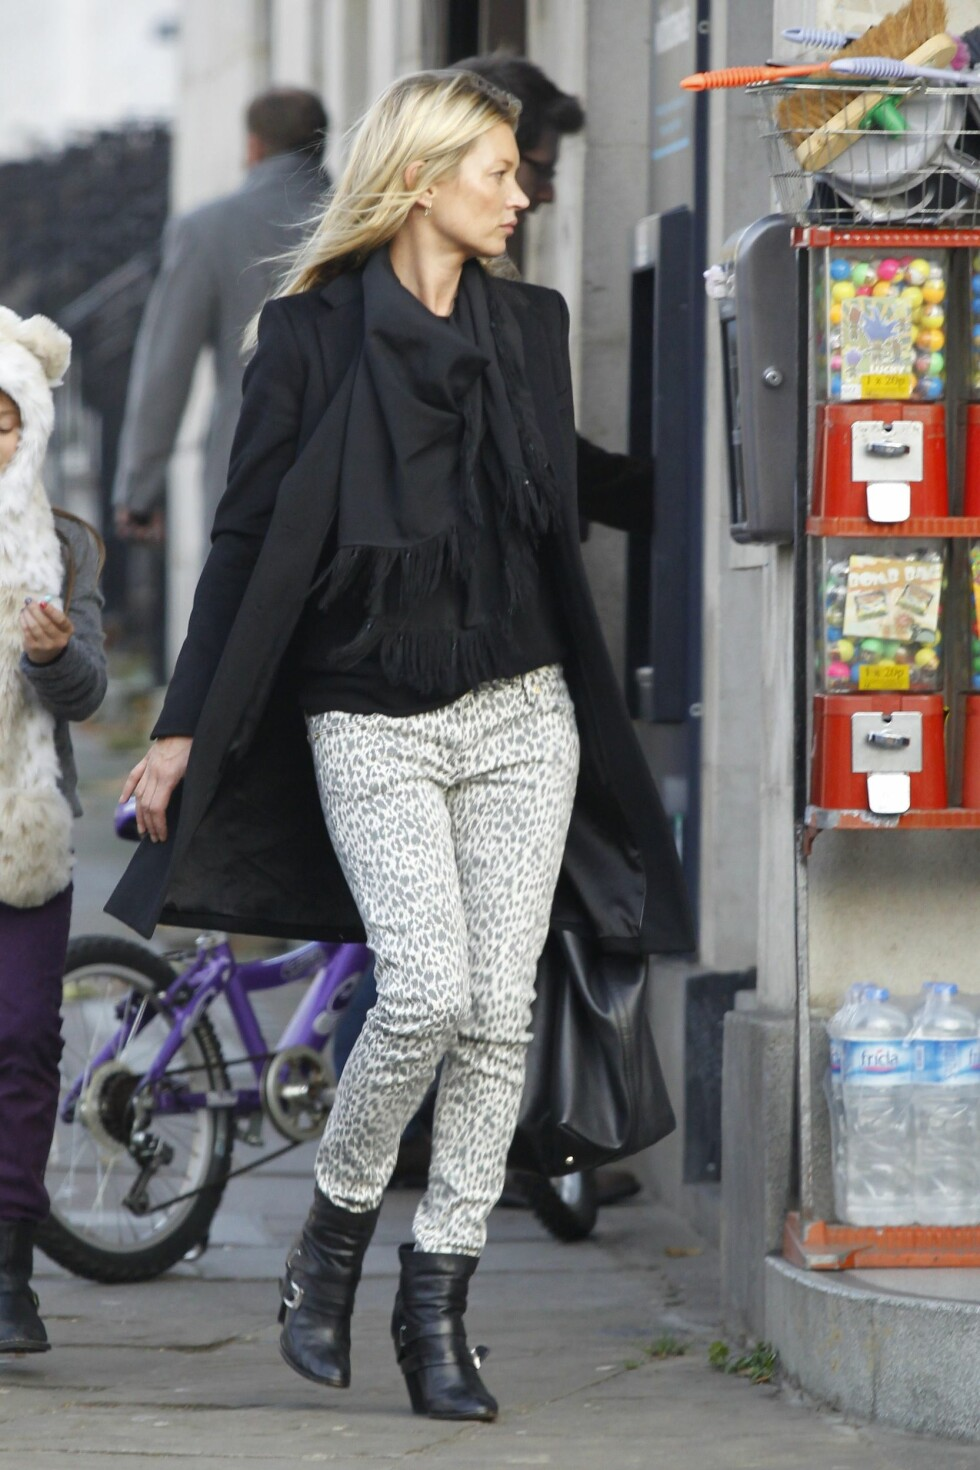 Kate Moss with her daughter Lila and friends leaving home and getting a mini cab in London, UK.  Pictured: Kate Moss   Ref: SPL338262  271111   Picture by: Splash News  Splash News and Pictures Los Angeles:310-821-2666 New York:212-619-2666 London:870-934-2666 photodesk@splashnews.com  *** Local Caption *** World Rights Foto: All Over Press